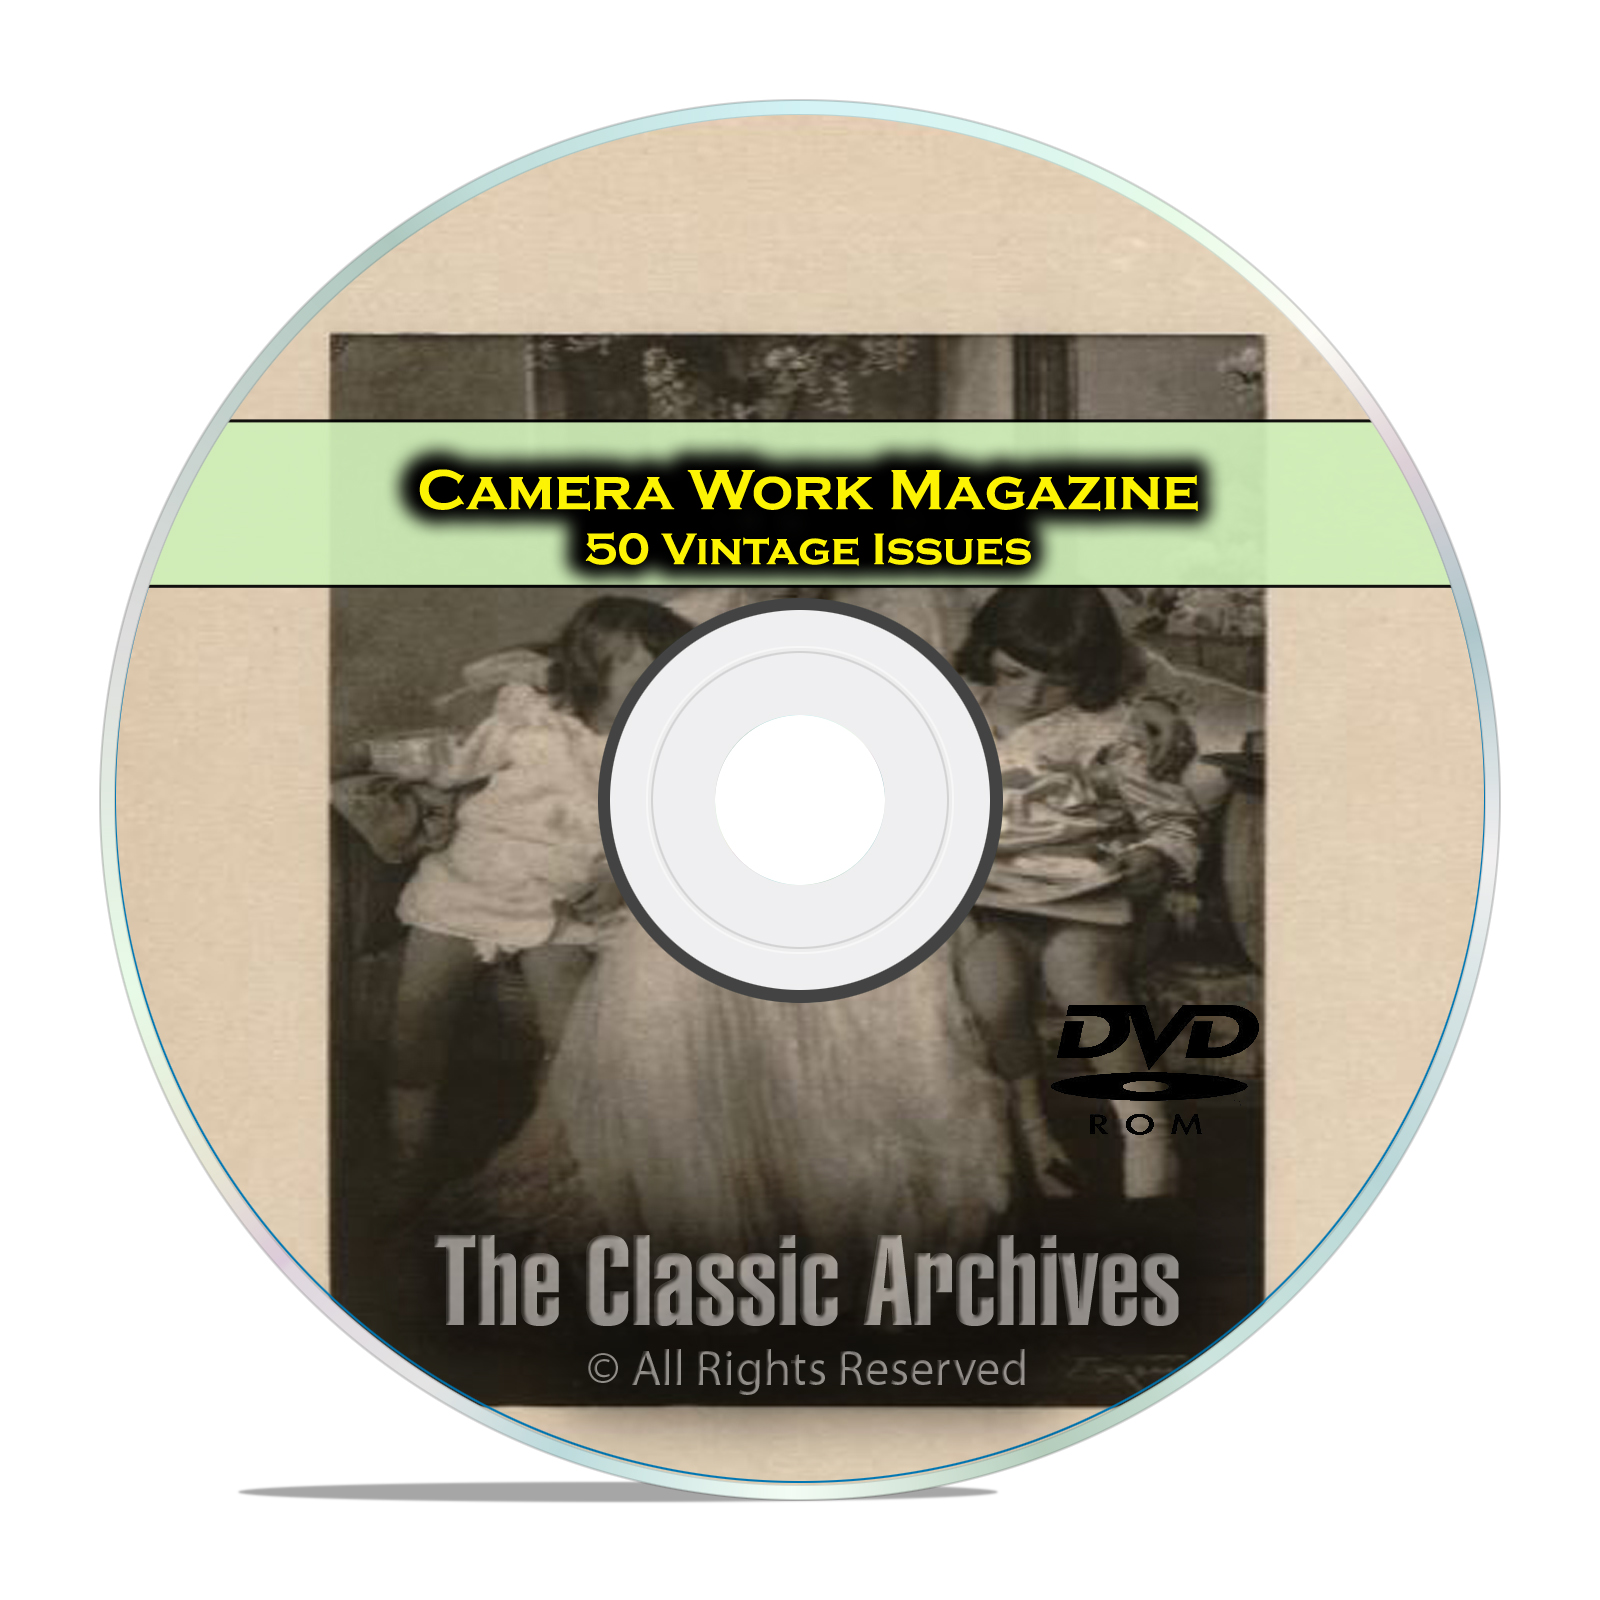 Camera Work Magazine, 50 Vintage Magazines 1903-1917 Classic Art Photos DVD - Click Image to Close